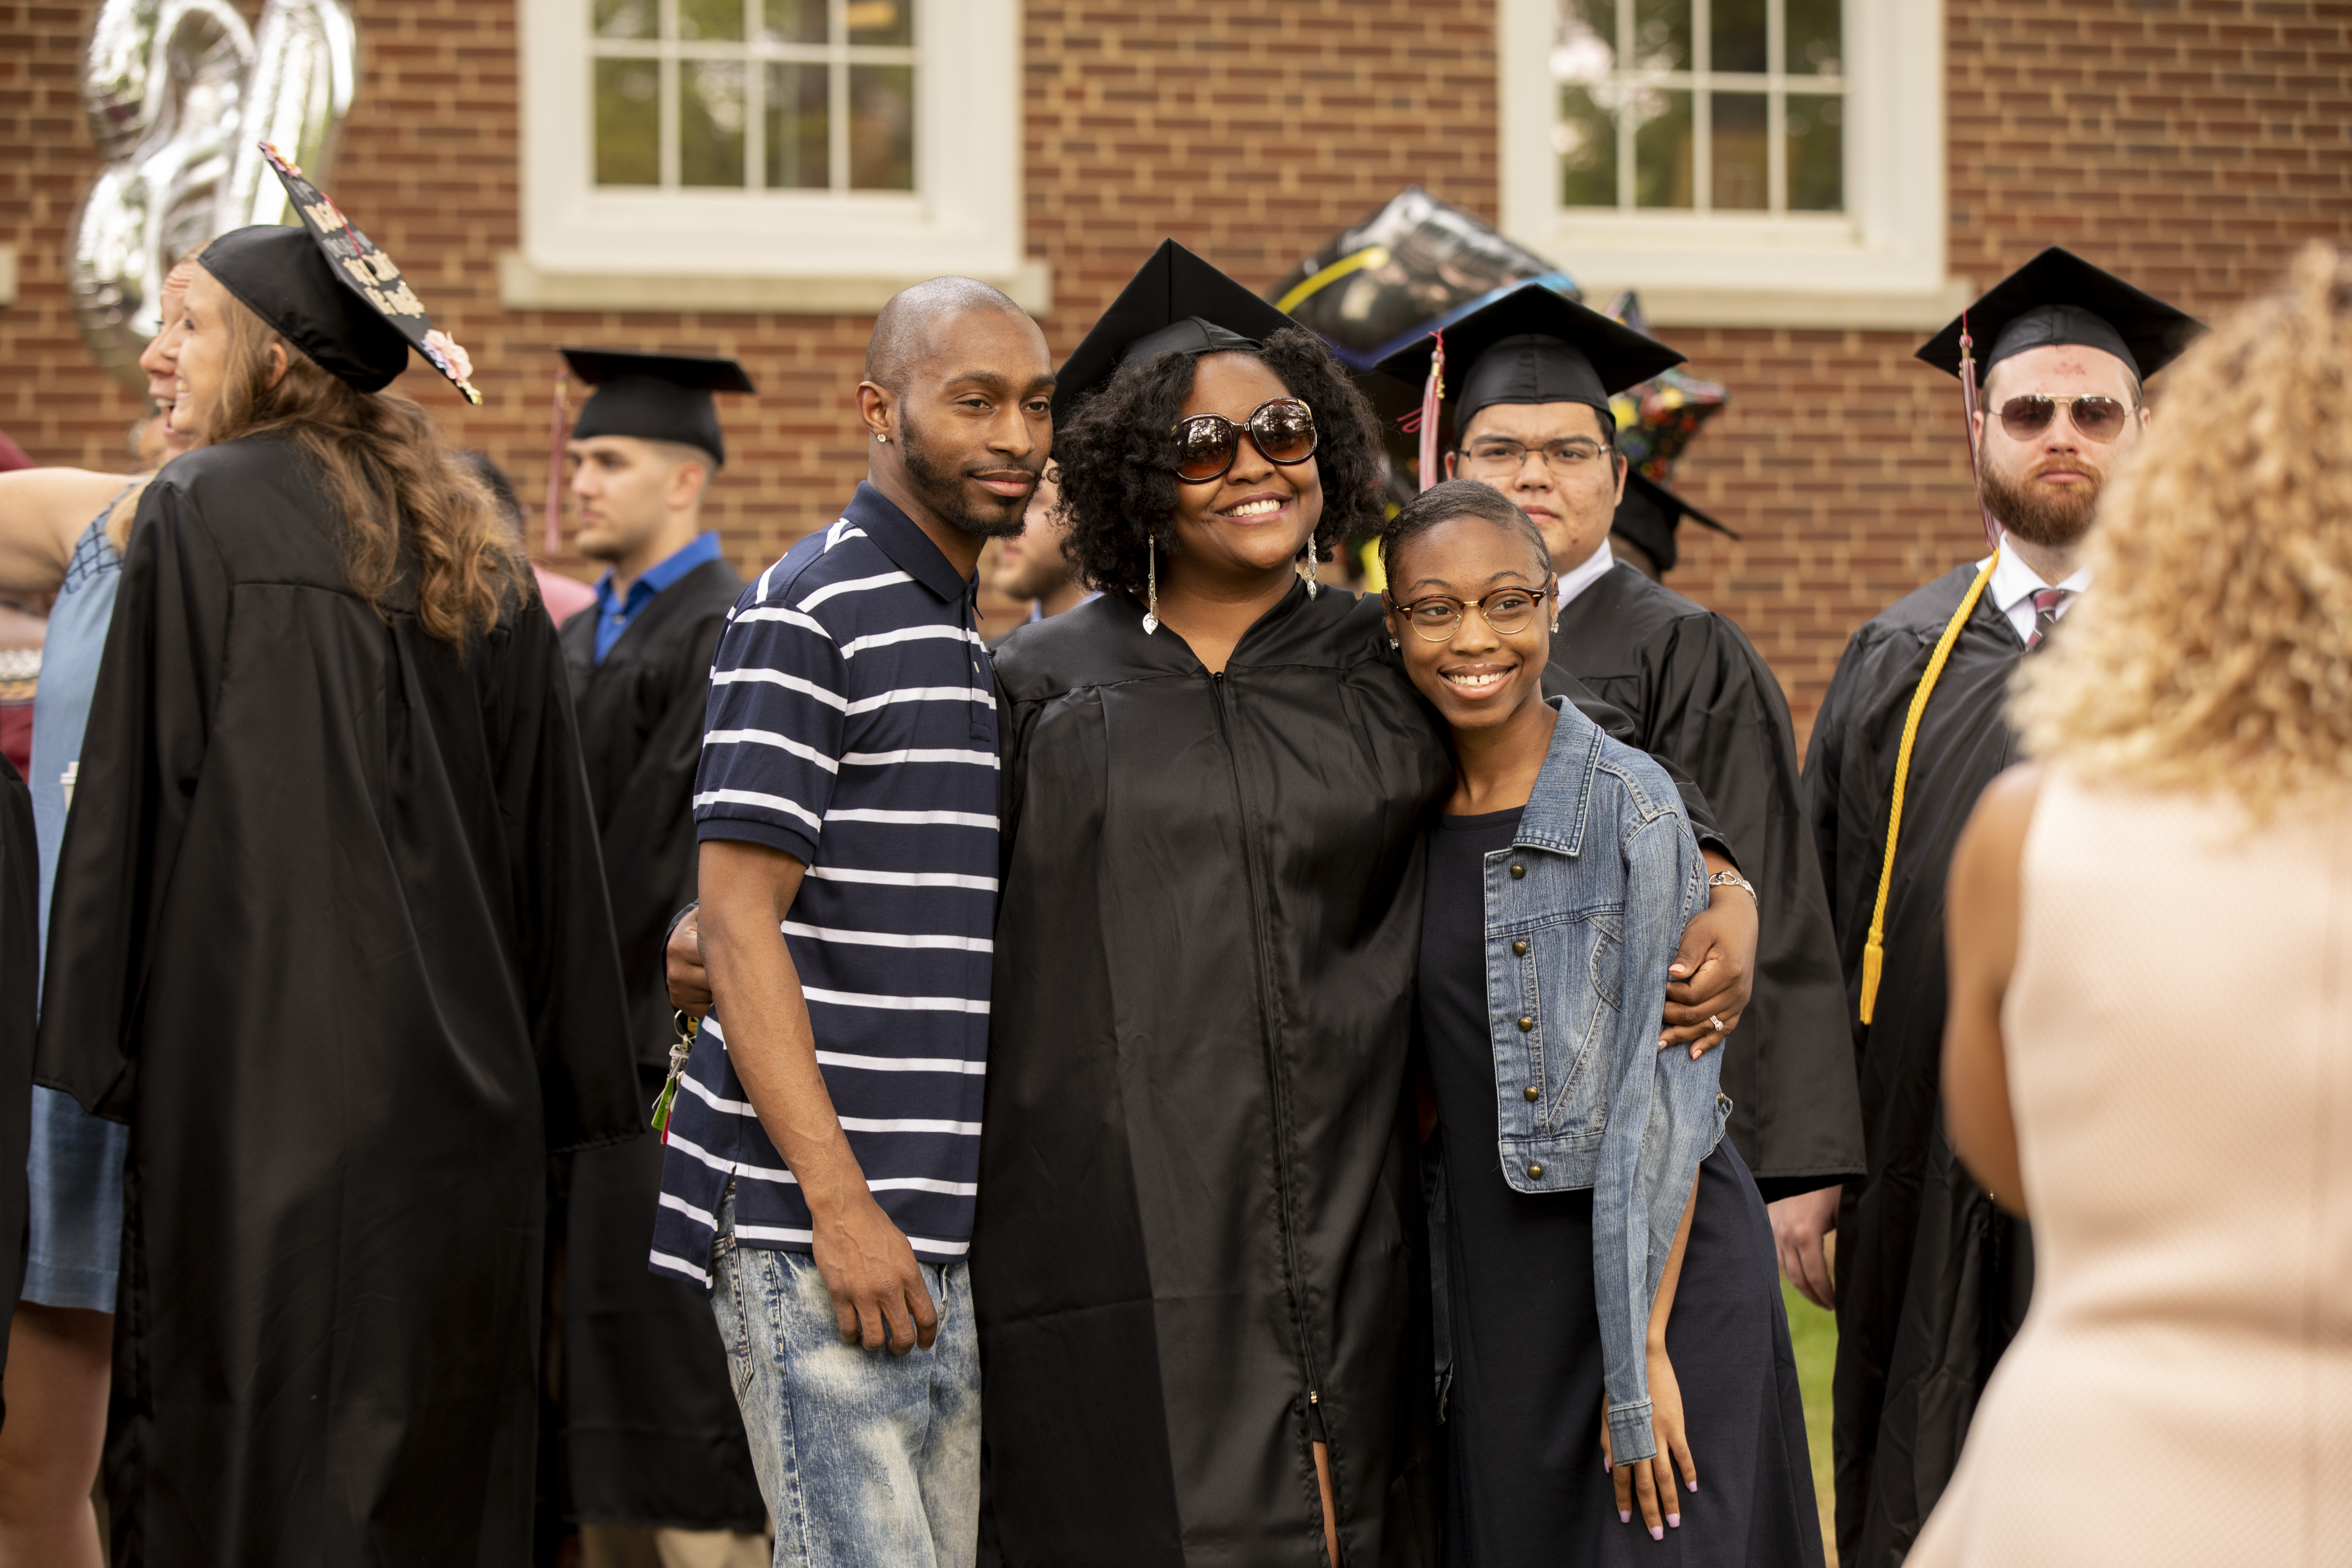 A family takes a photo after Commencement.